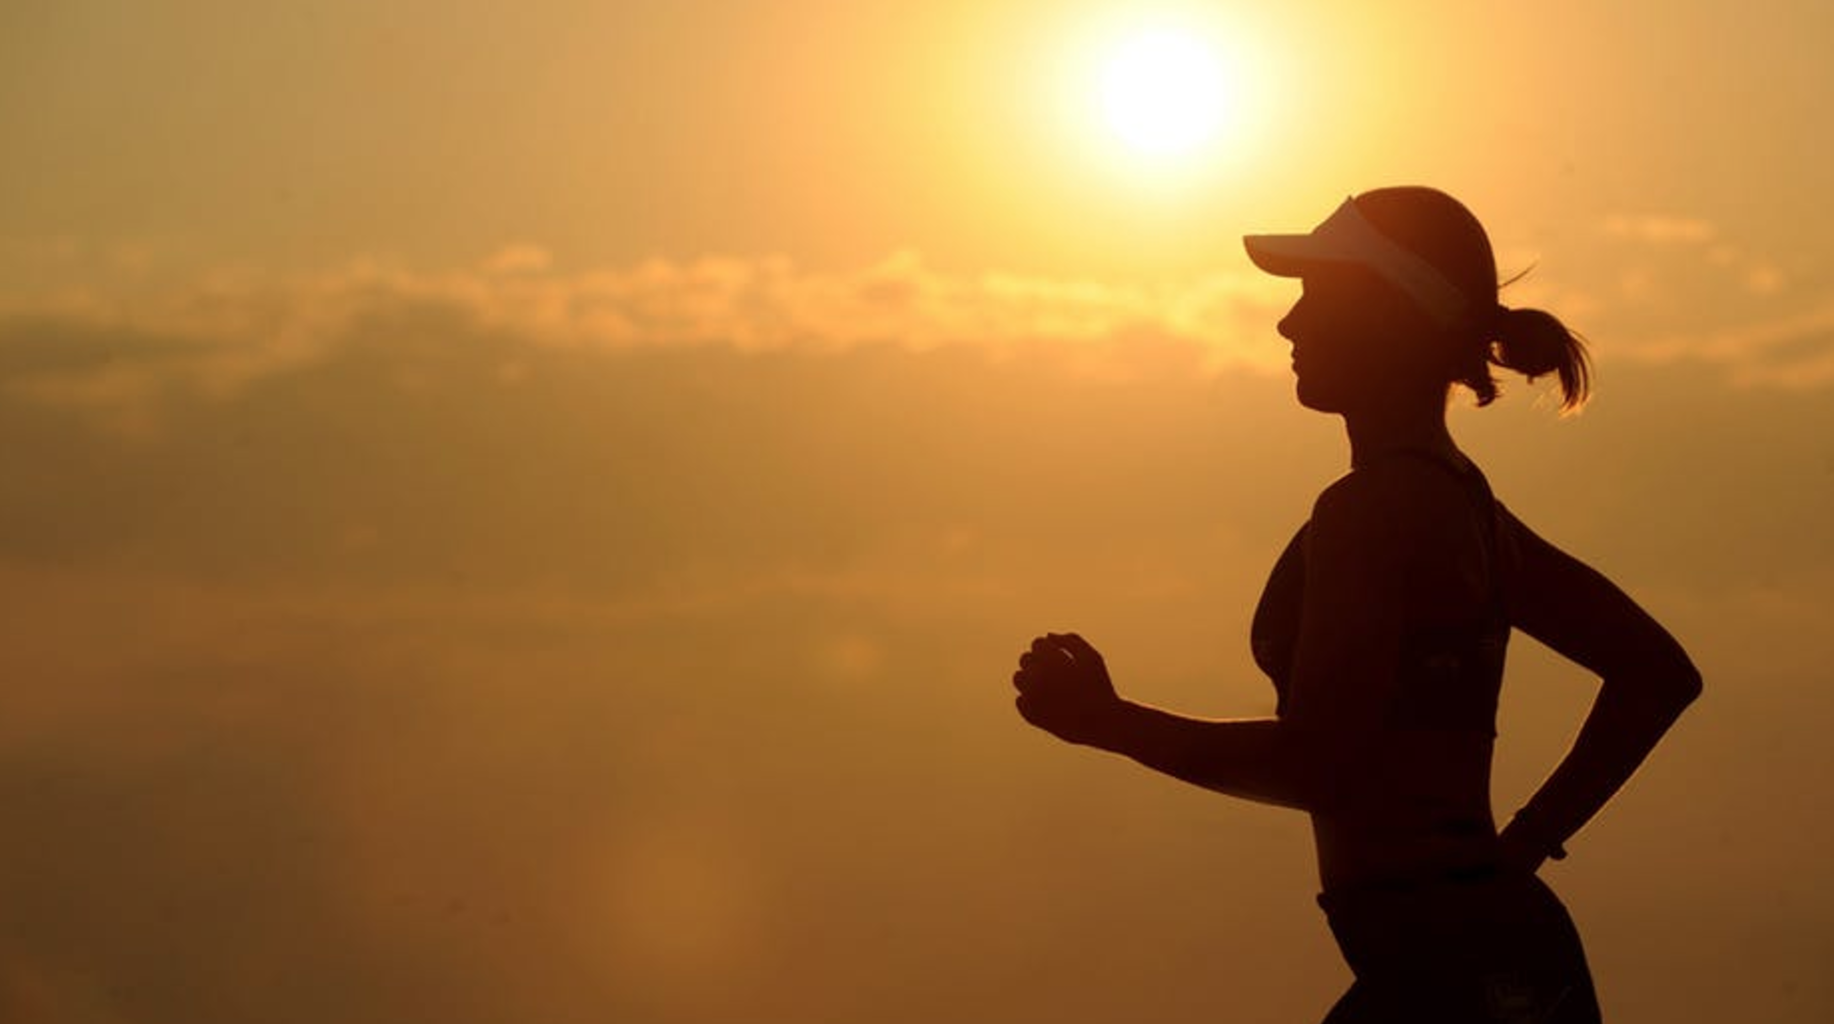 A quarter of adults are too inactive, putting health at risk